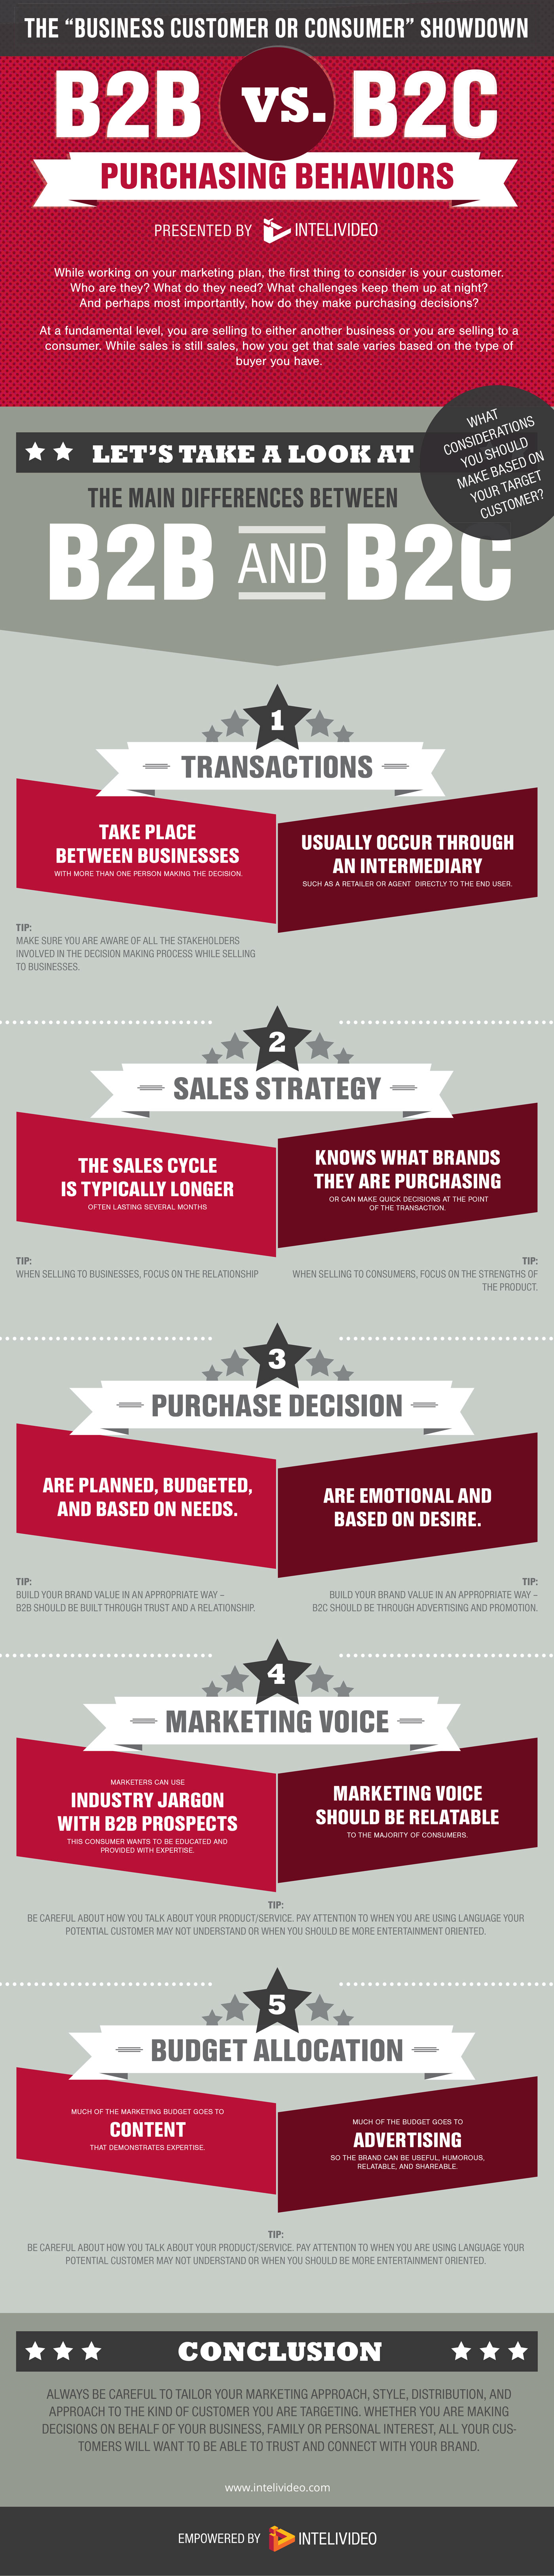 intelivideo-whats-involved-in-the-buyers-decision-infographic.jpg